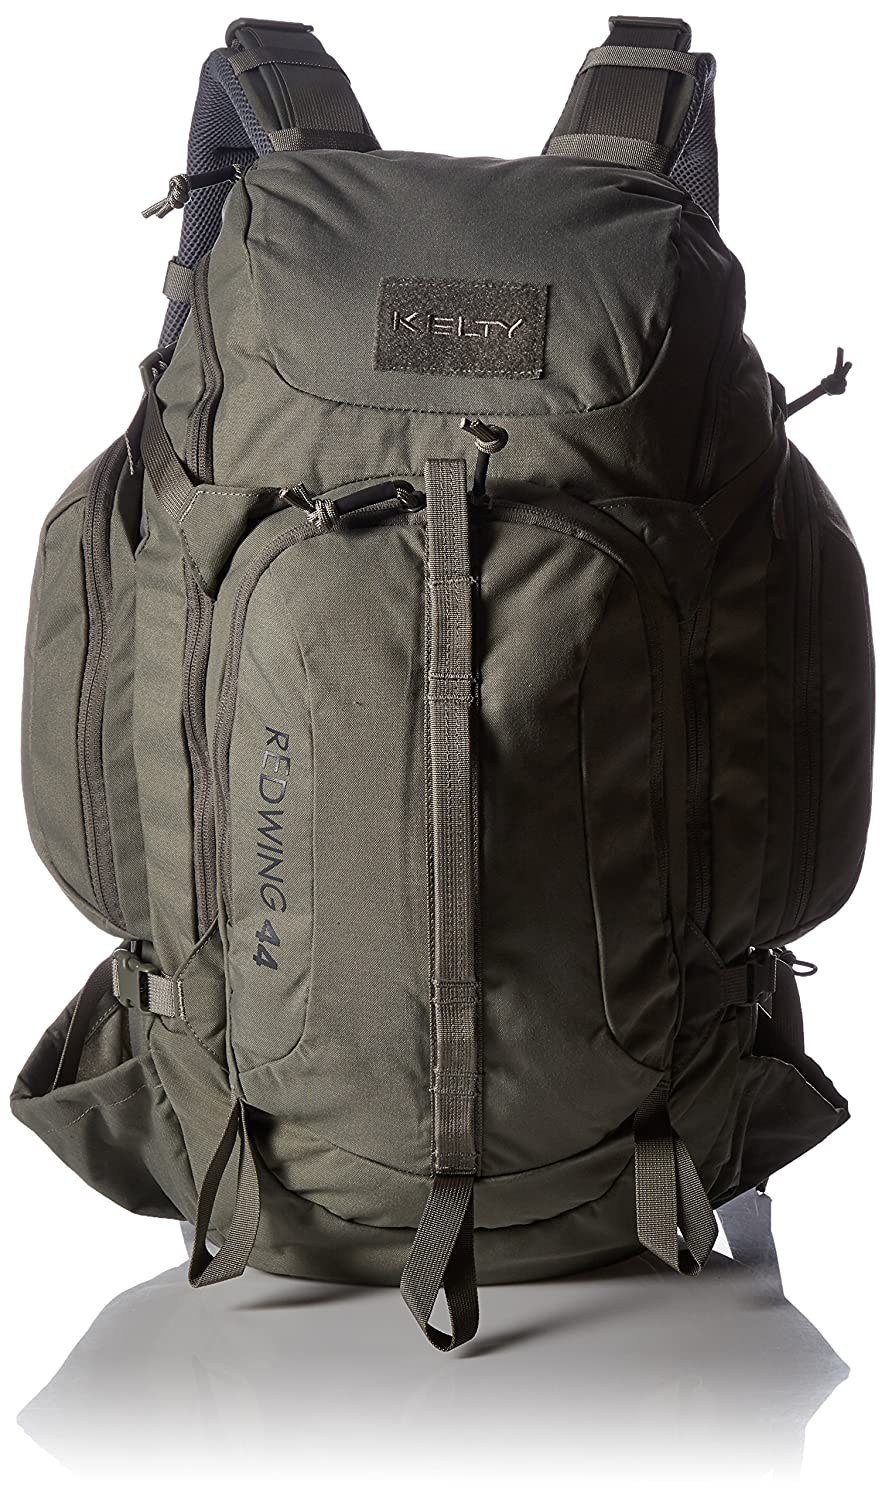 431a14b32de7 Kelty Redwing 44l Internal Frame Backpack- Fenix Toulouse Handball